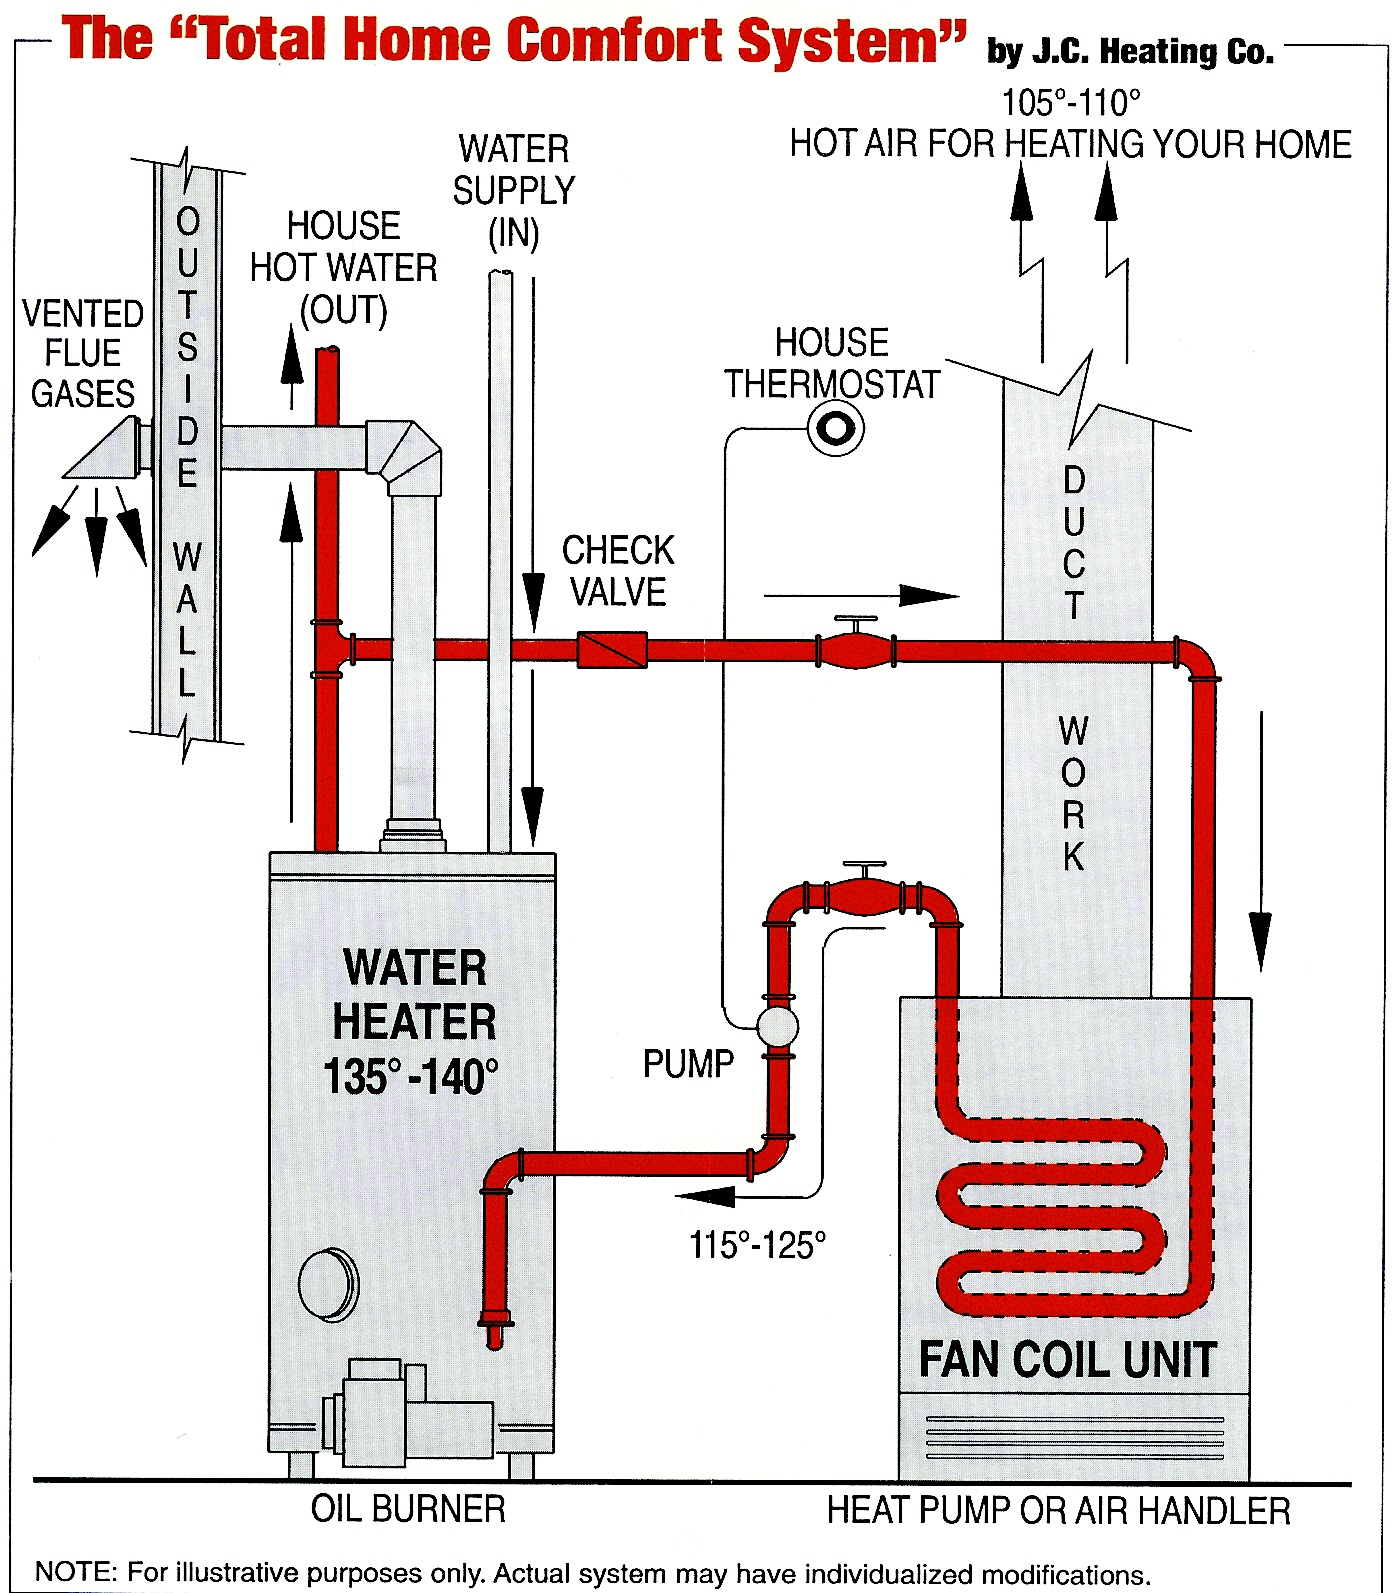 Heat pump heating system